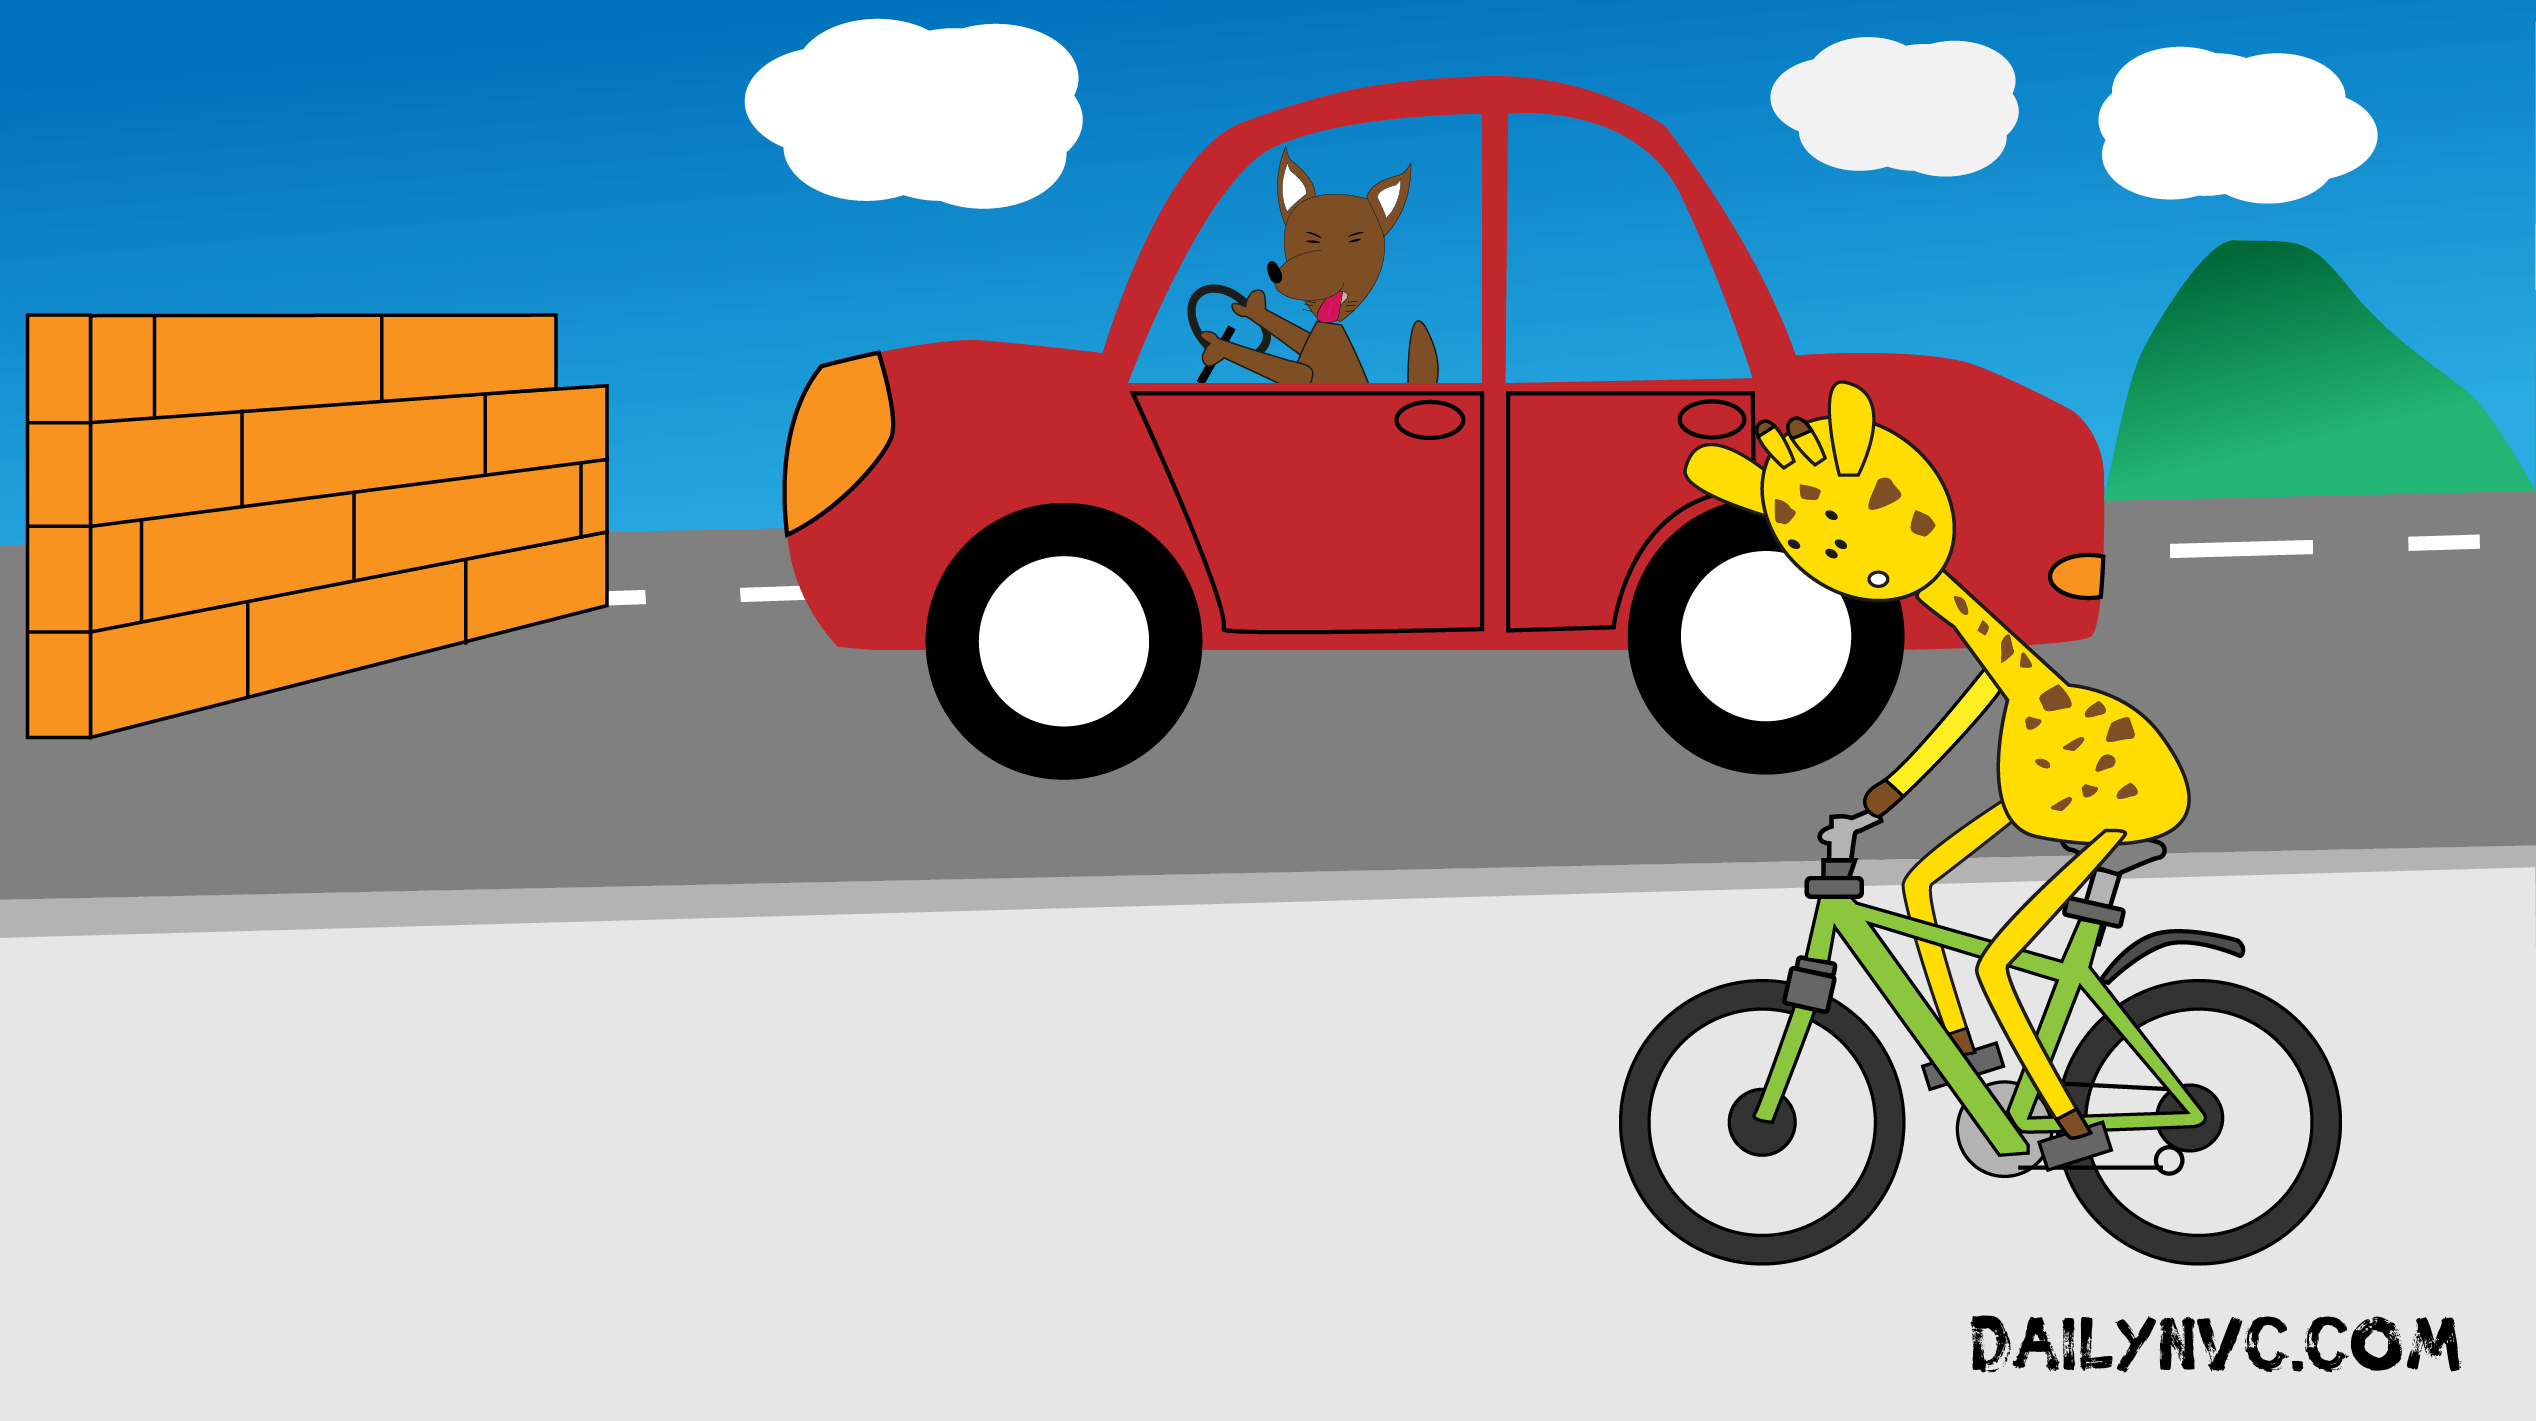 Do you think giraffes can drive? | Daily NVC